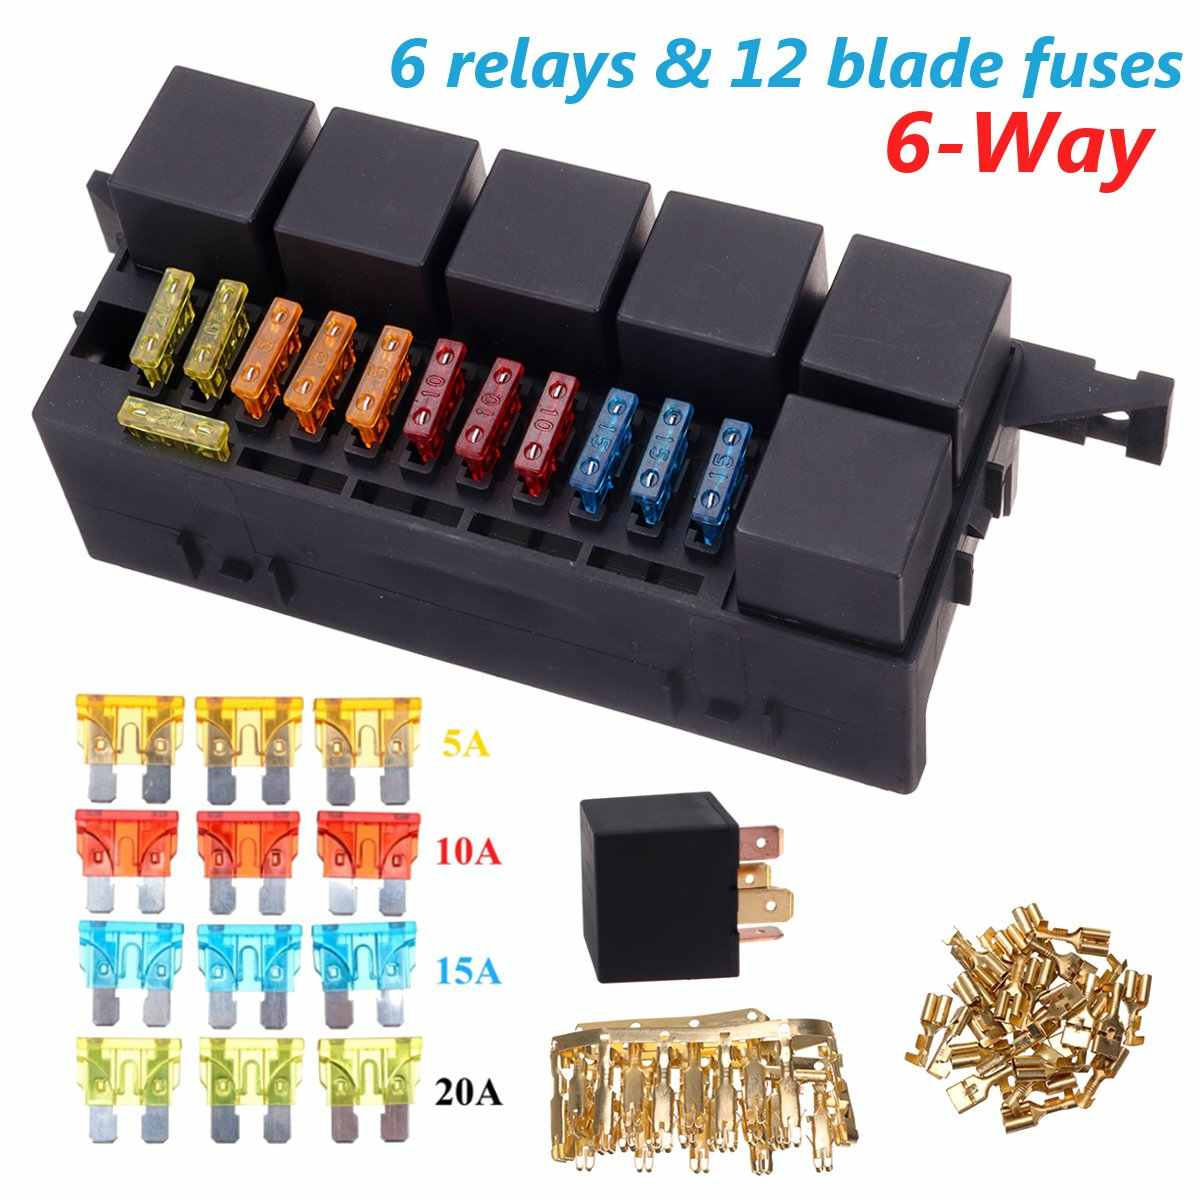 small resolution of auto car part 6 way 6 relays w relay box 12 blade fuses waterproof